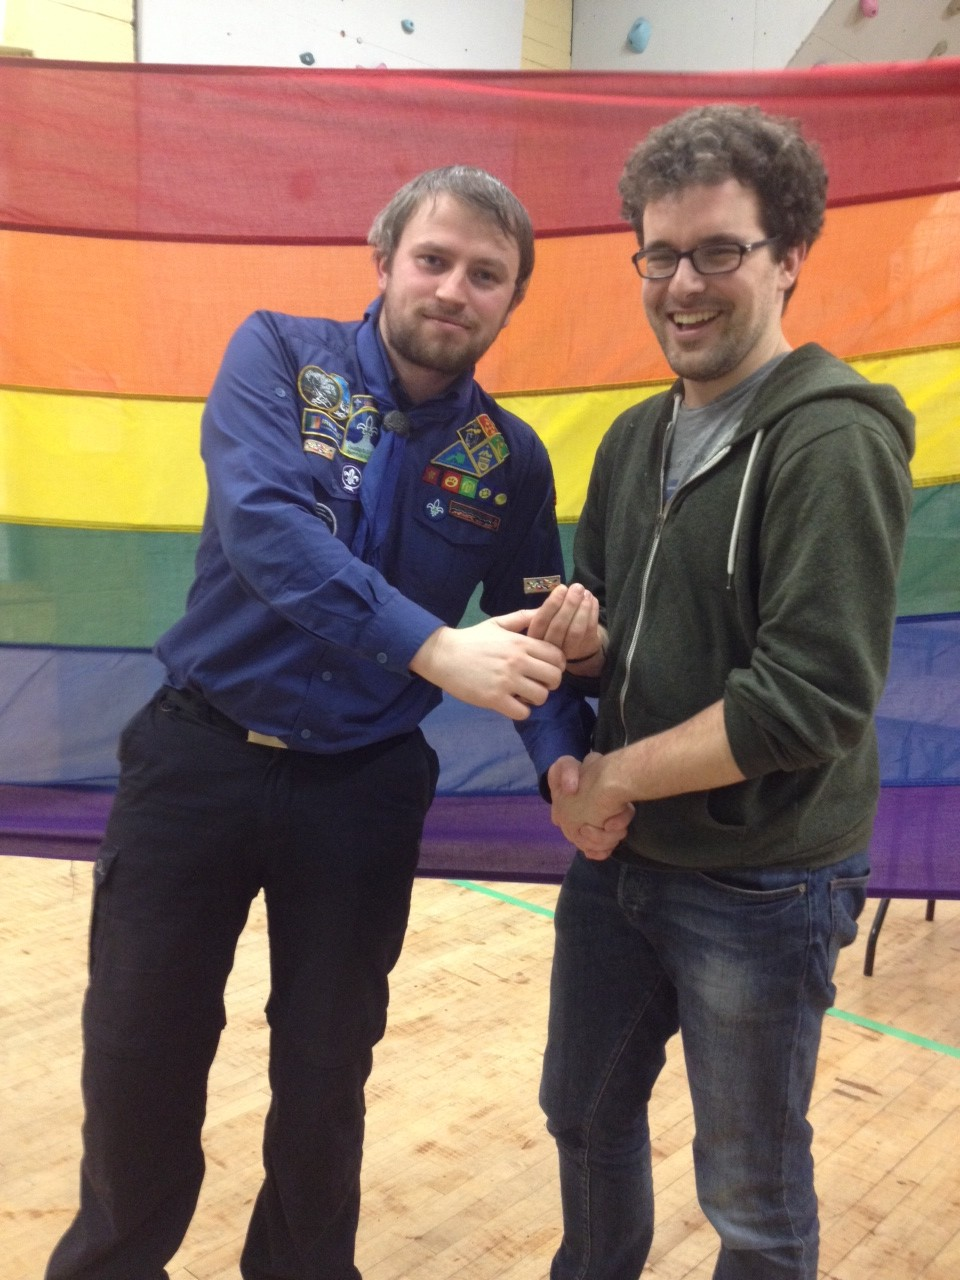 Eoin Egan (a former scout himself, and current ShoutOut volunteer) pictured with Scout Master Ger Hennessy.